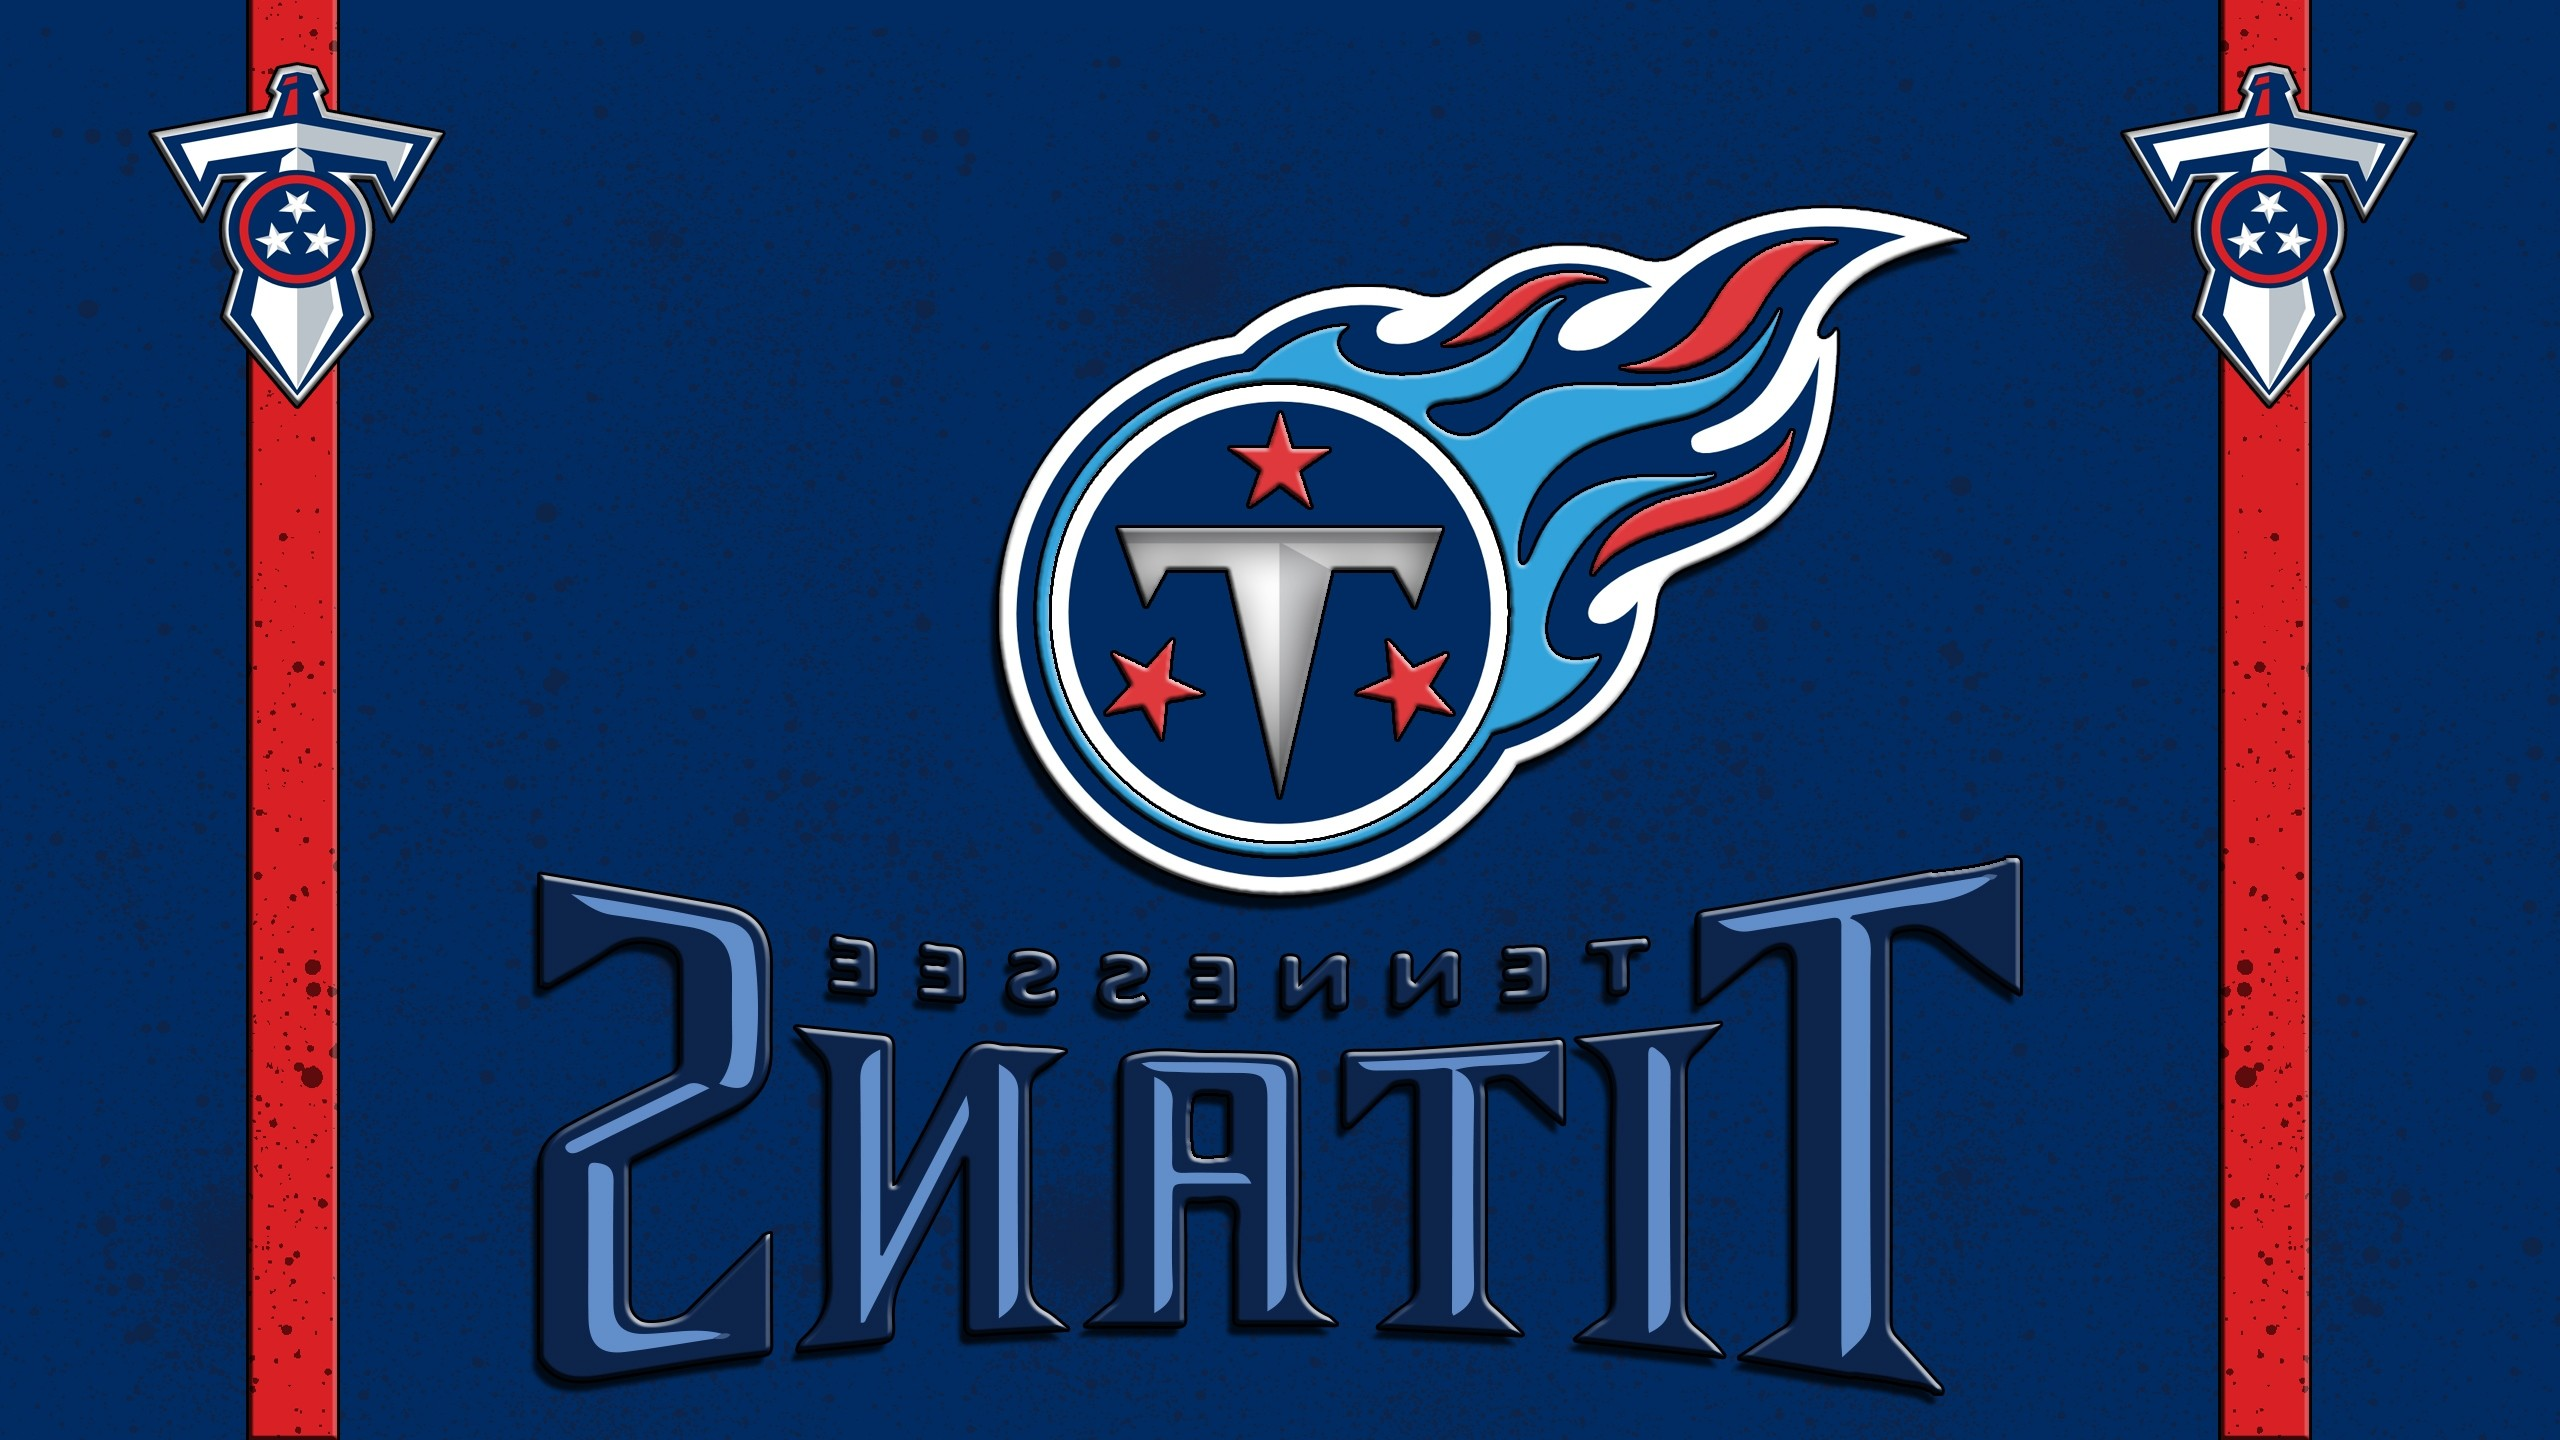 Res: 2560x1440, Tennessee Titans Wallpapers HD #1Z3AY9X